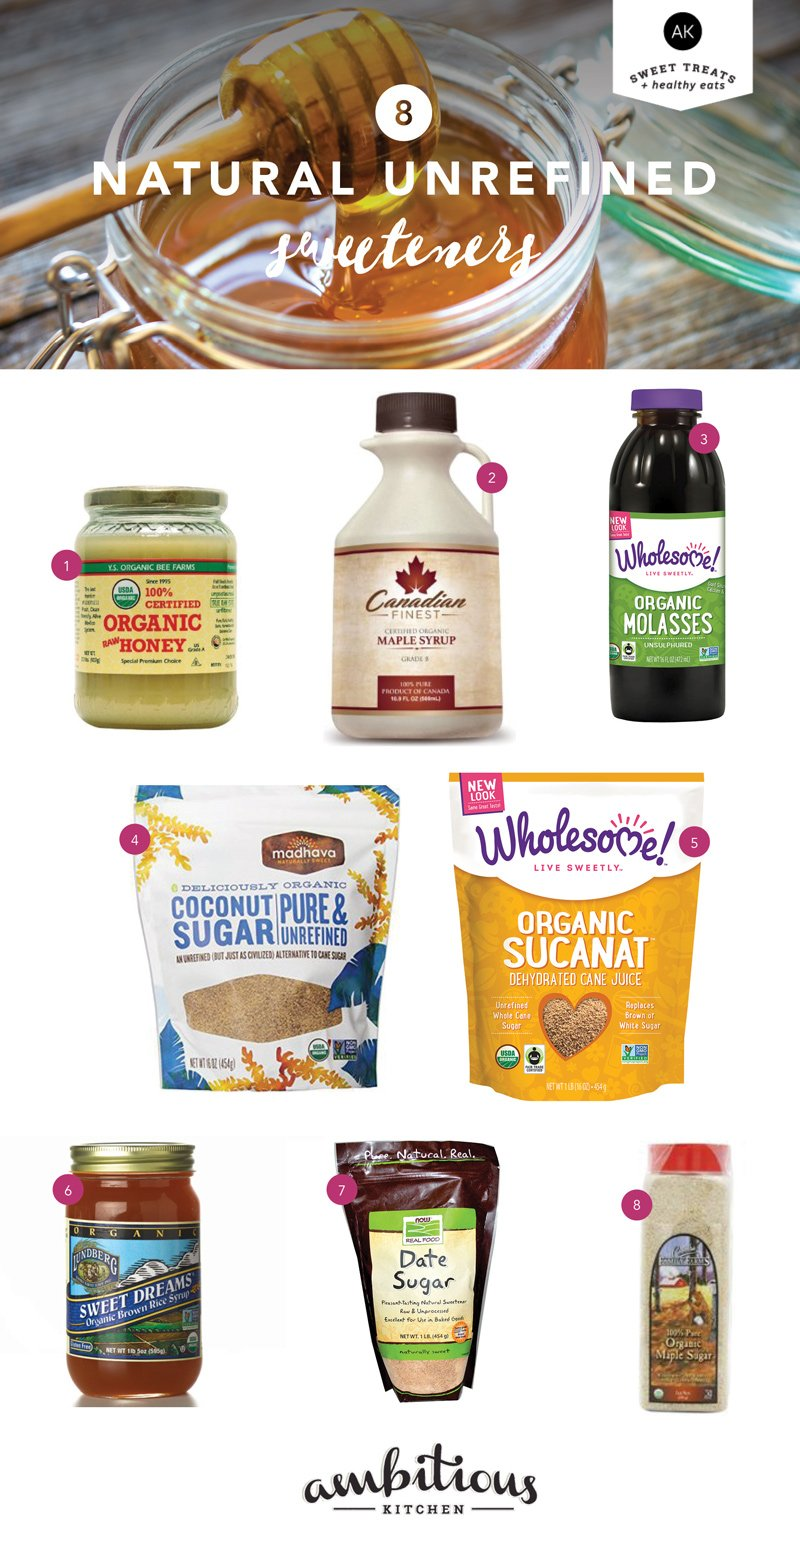 A guide to 8 Natural unrefined sweeteners + how to use them instead of sugar.